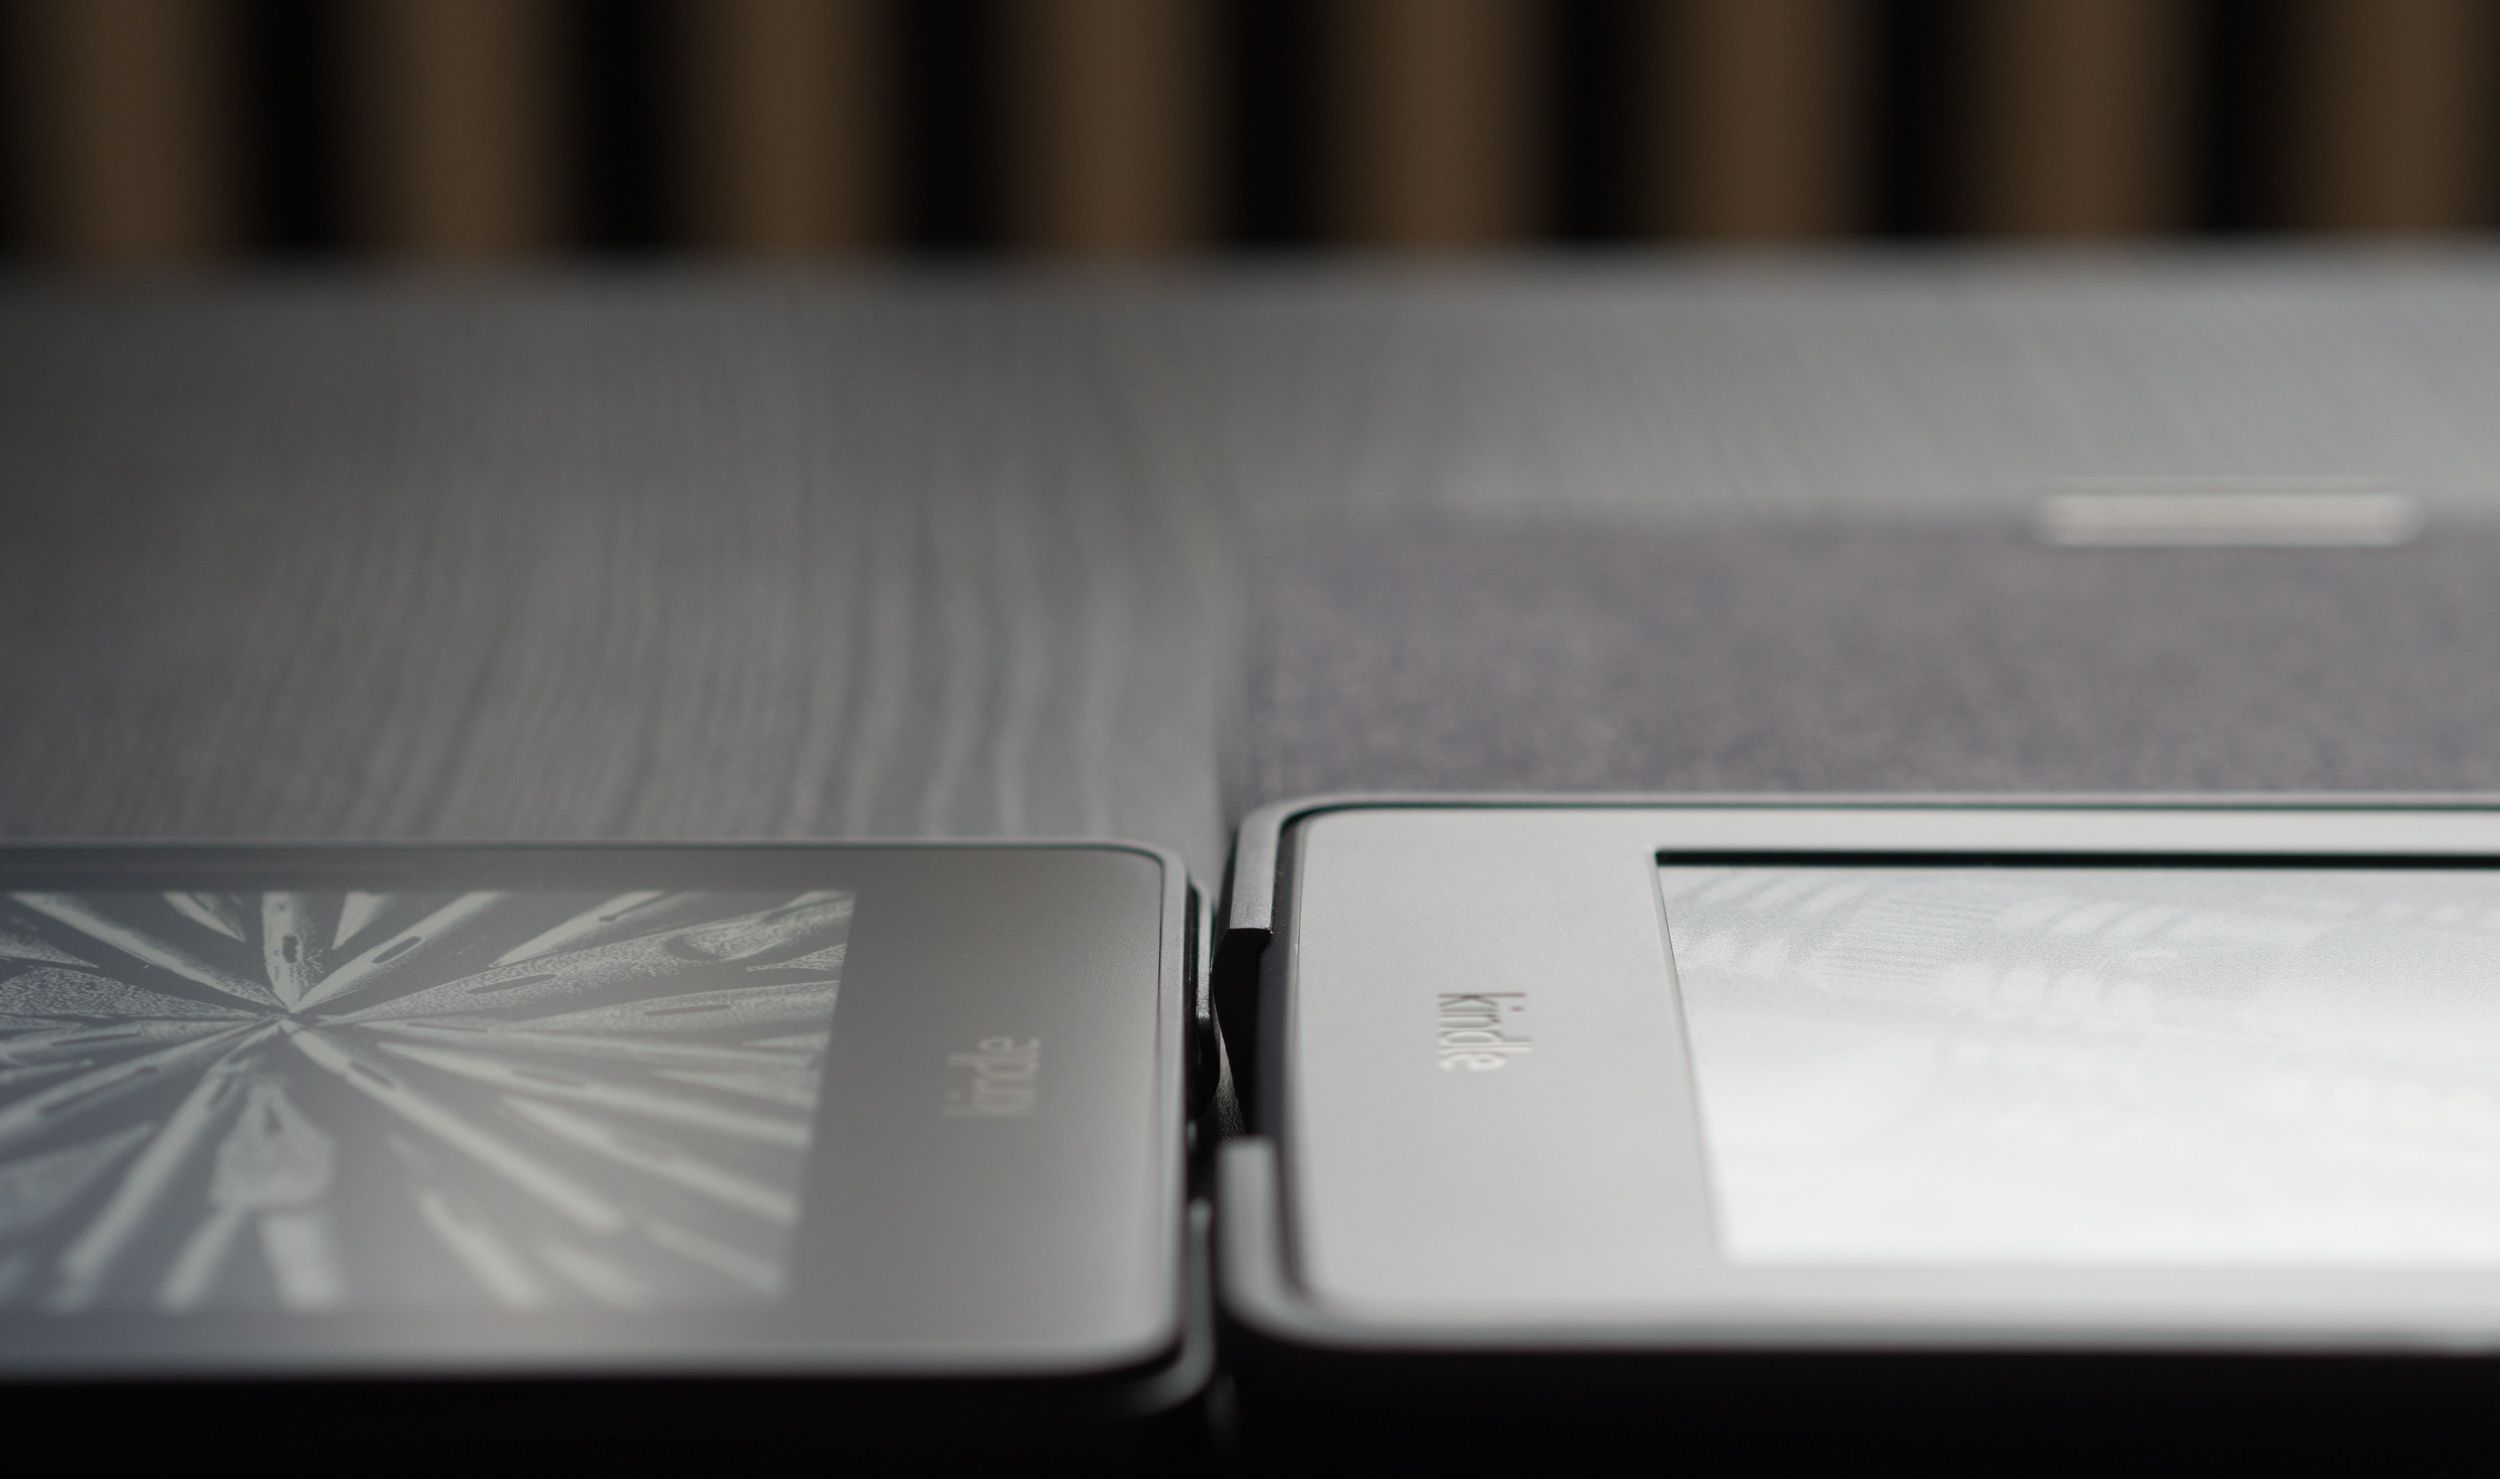 A side effect of this mechanism is that the case doesn't add as much bulk around the edges of the device, which gives the whole setup a more refined look than the chunky rubber corners of the Paperwhite cover (right).